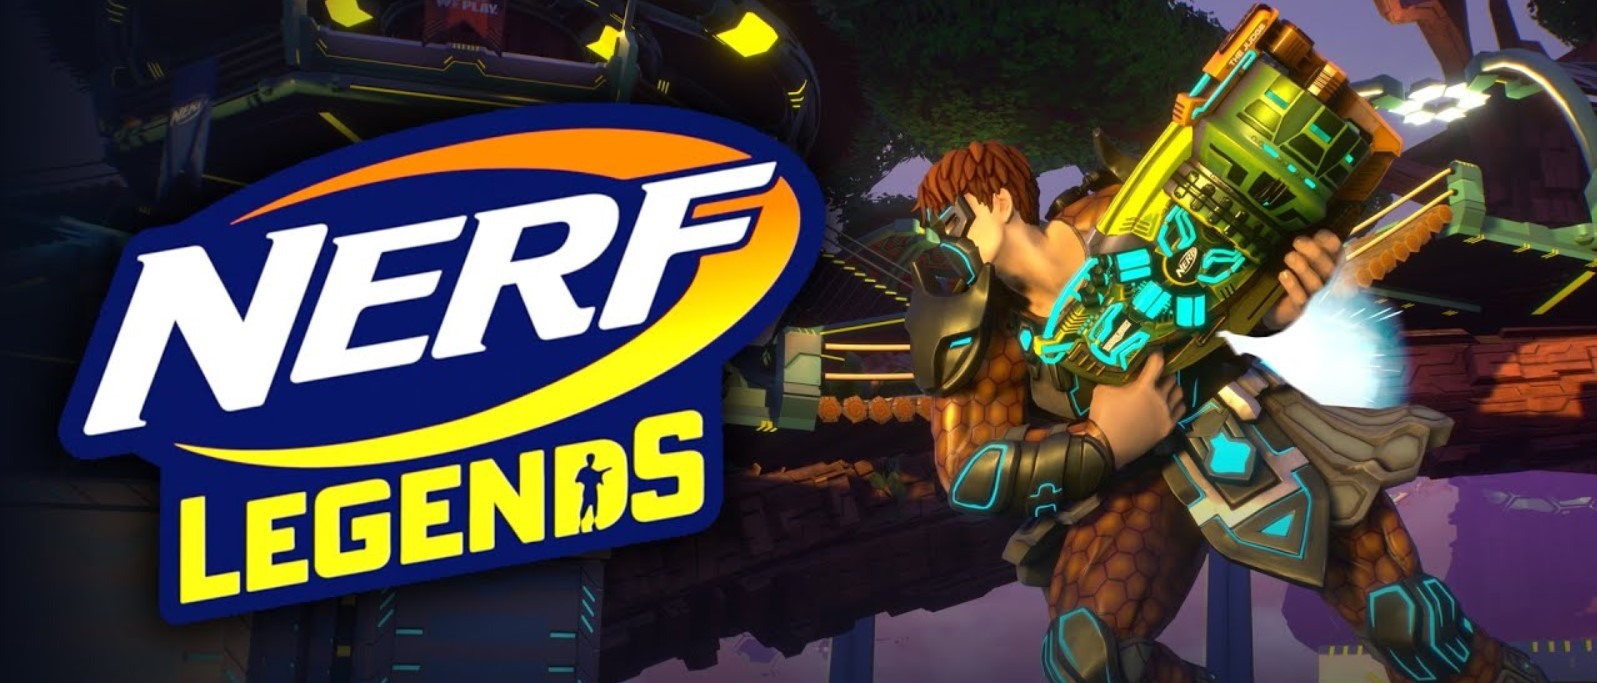 Nerf Legends Nintendo Switch Game Free Download Full Version